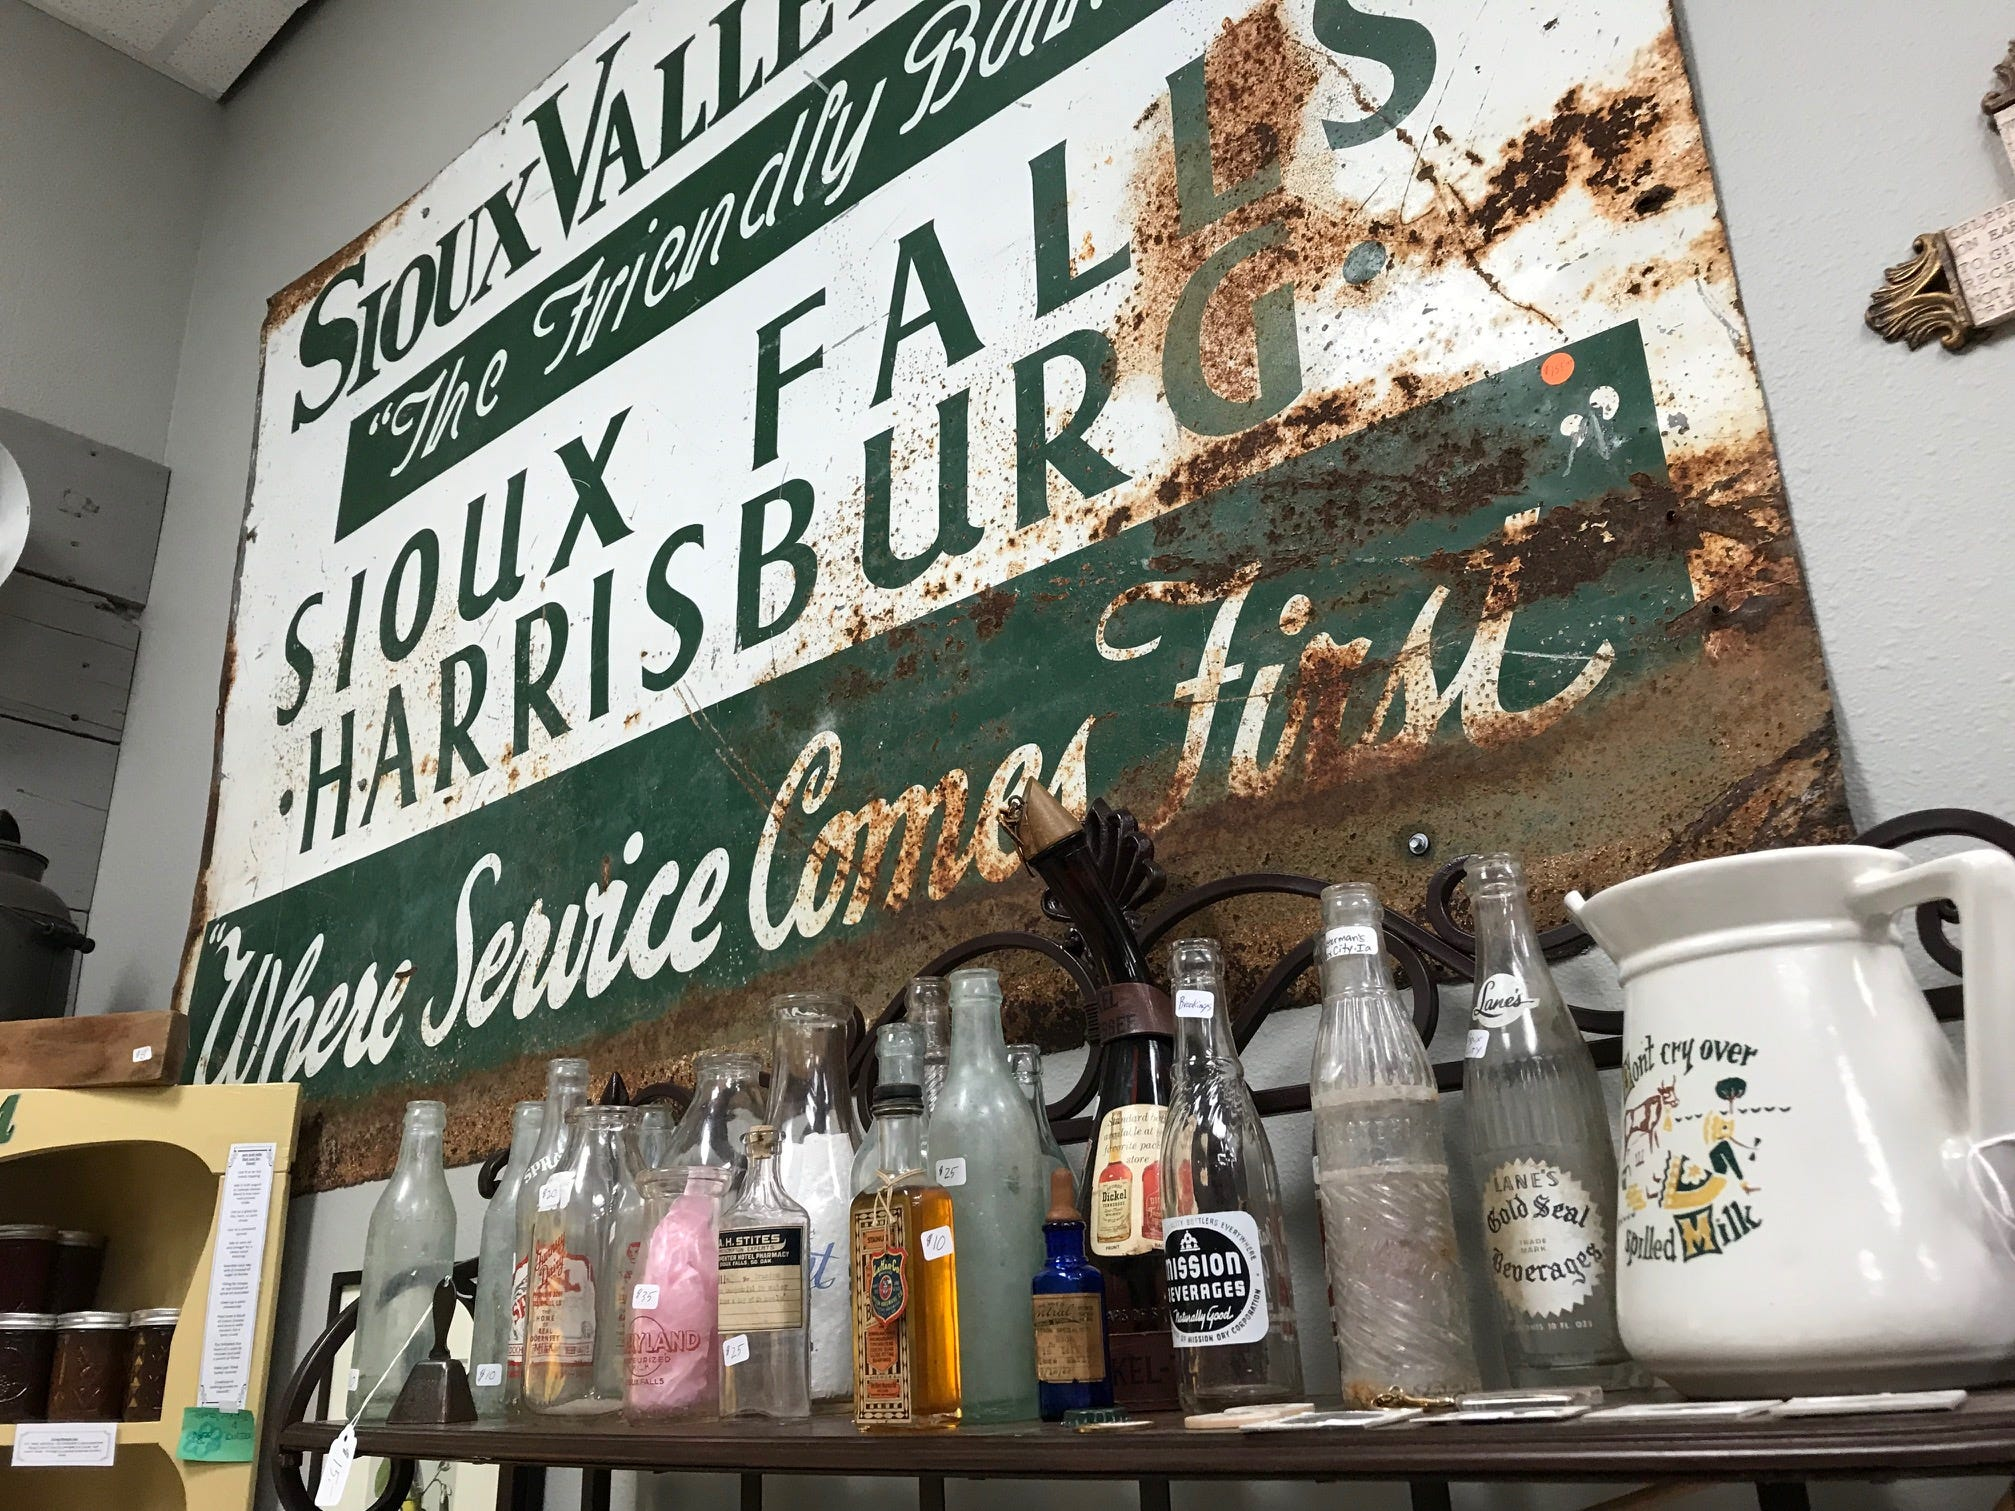 Sioux Falls-related objects for sale at the new Repurpose Project Center in Sioux Falls.